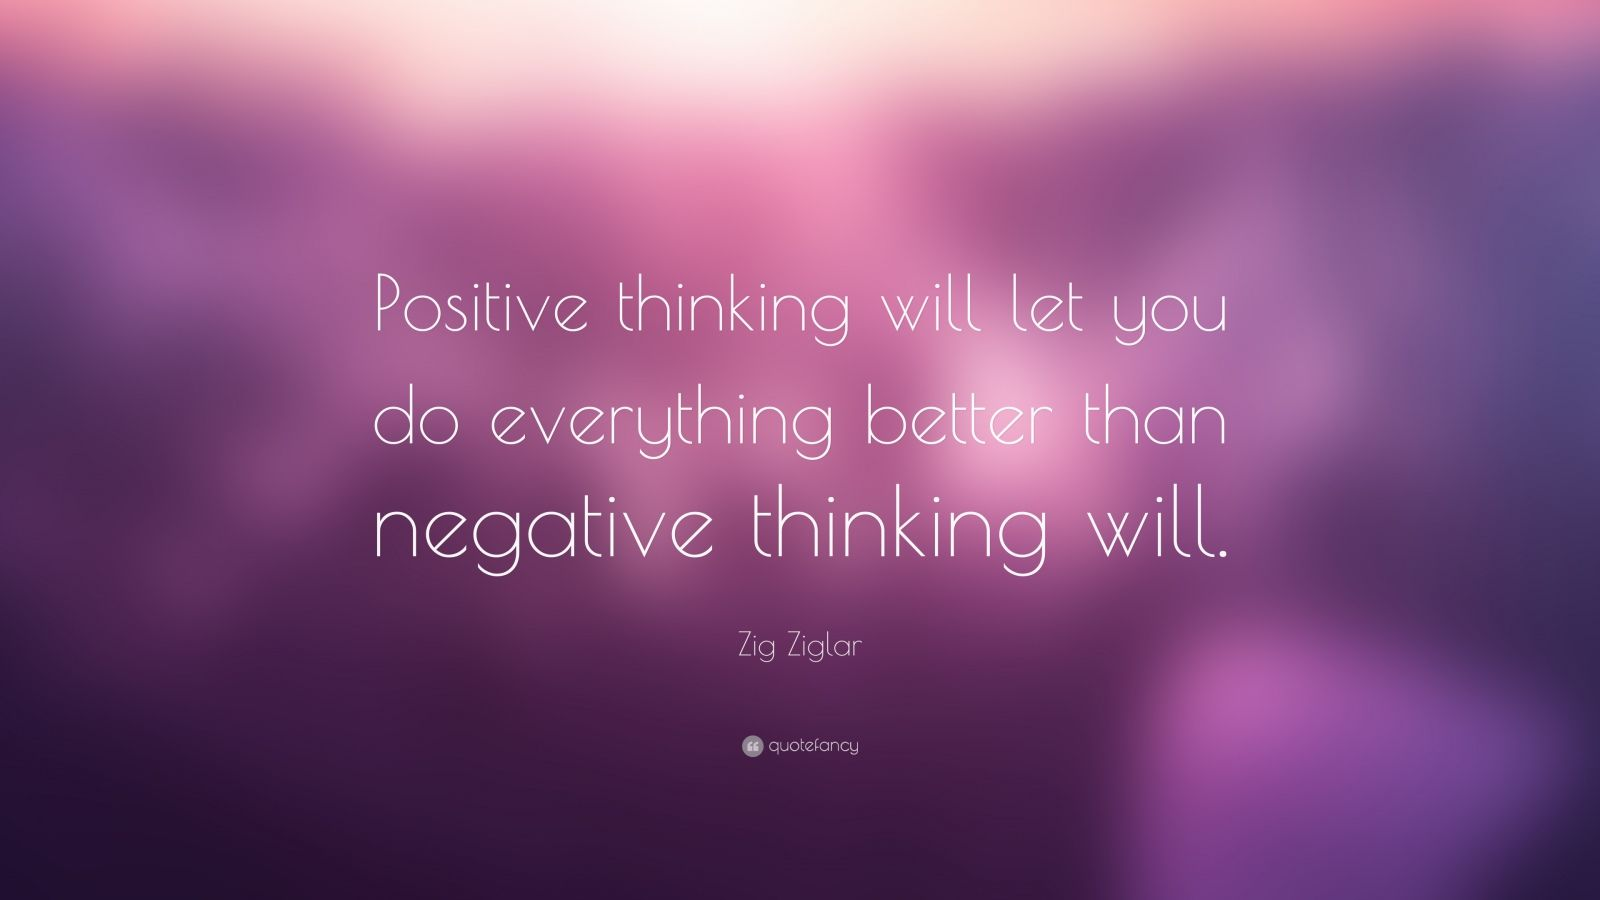 essay on the power of positive thinking power of positivity  positive quotes quotefancy positive quotes positive thinking will let you do everything better than negative thinking